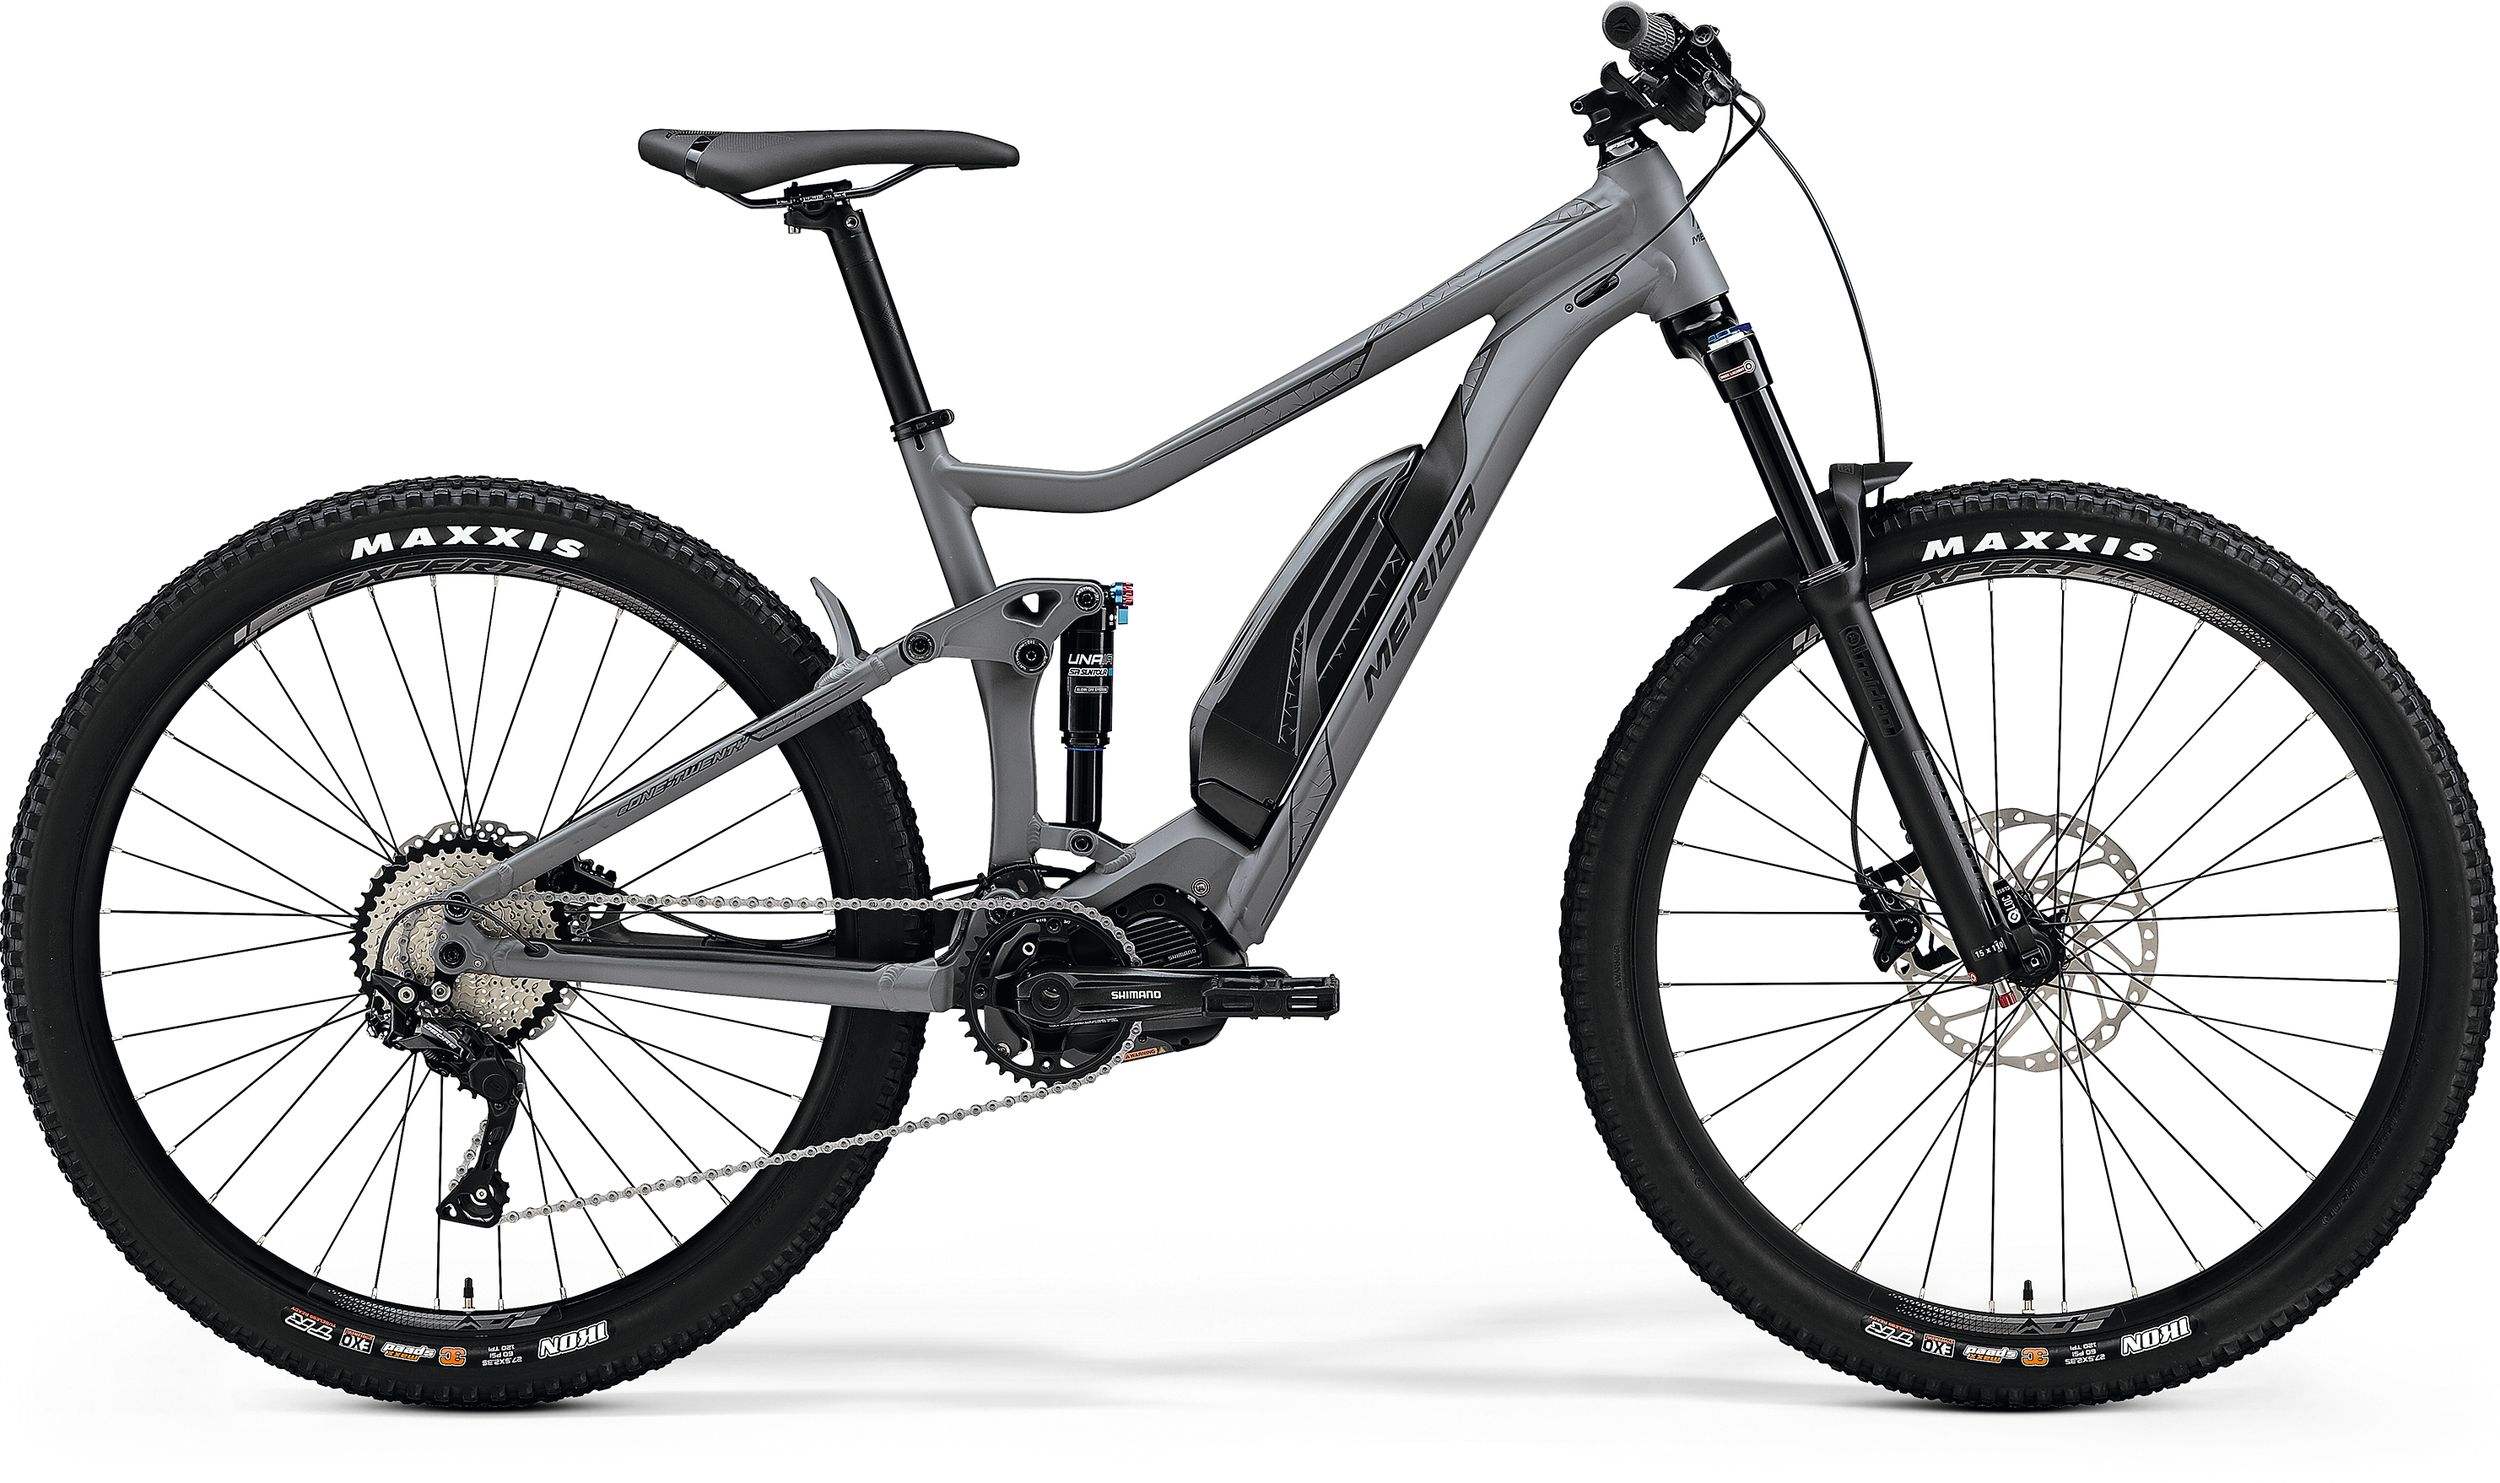 2019 MERIDA EONE-TWENTY